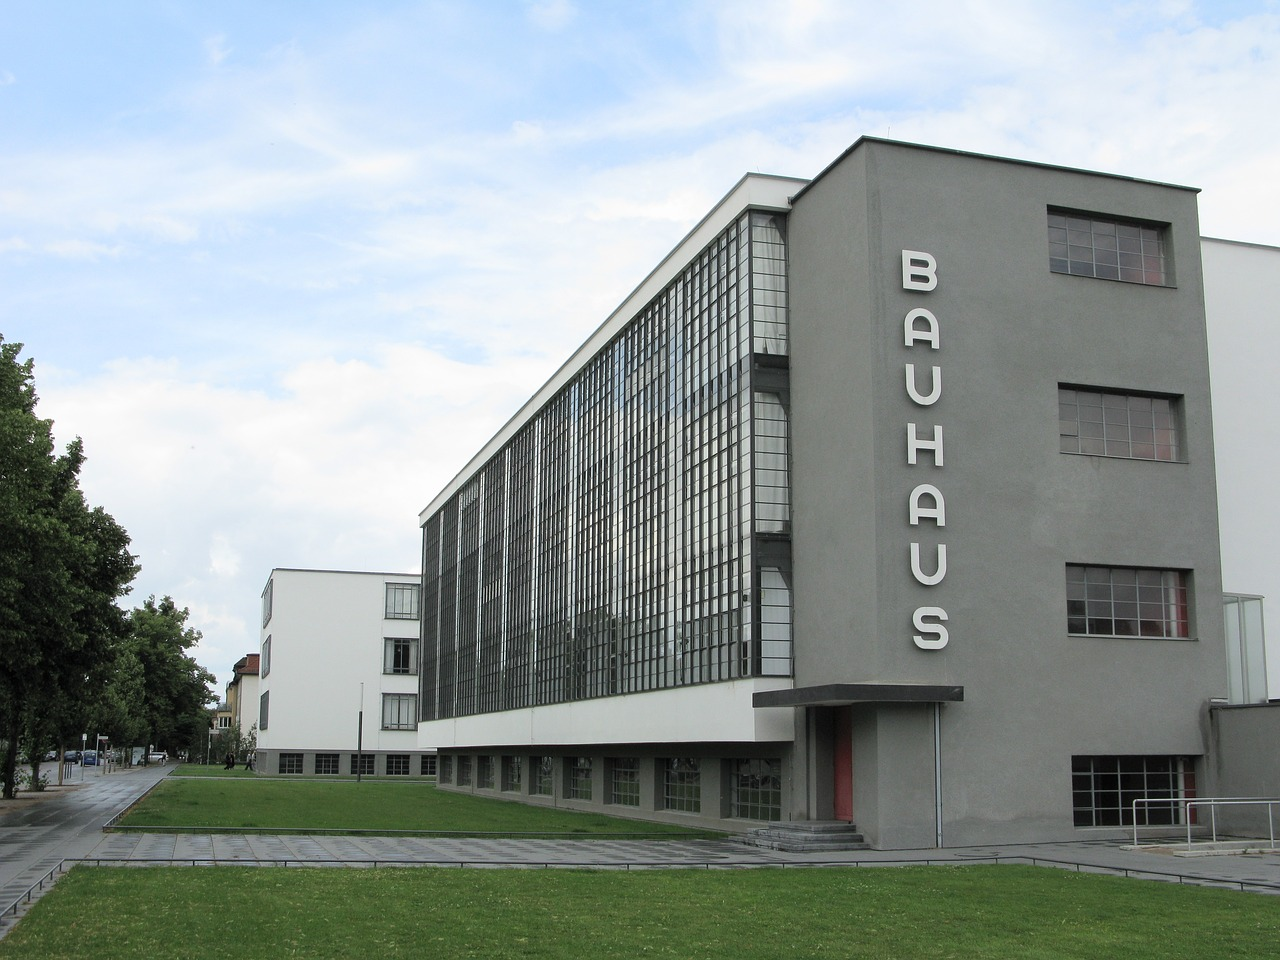 Architekt Bauhausstil How The Staatliches Bauhaus Fused Art And Industrial